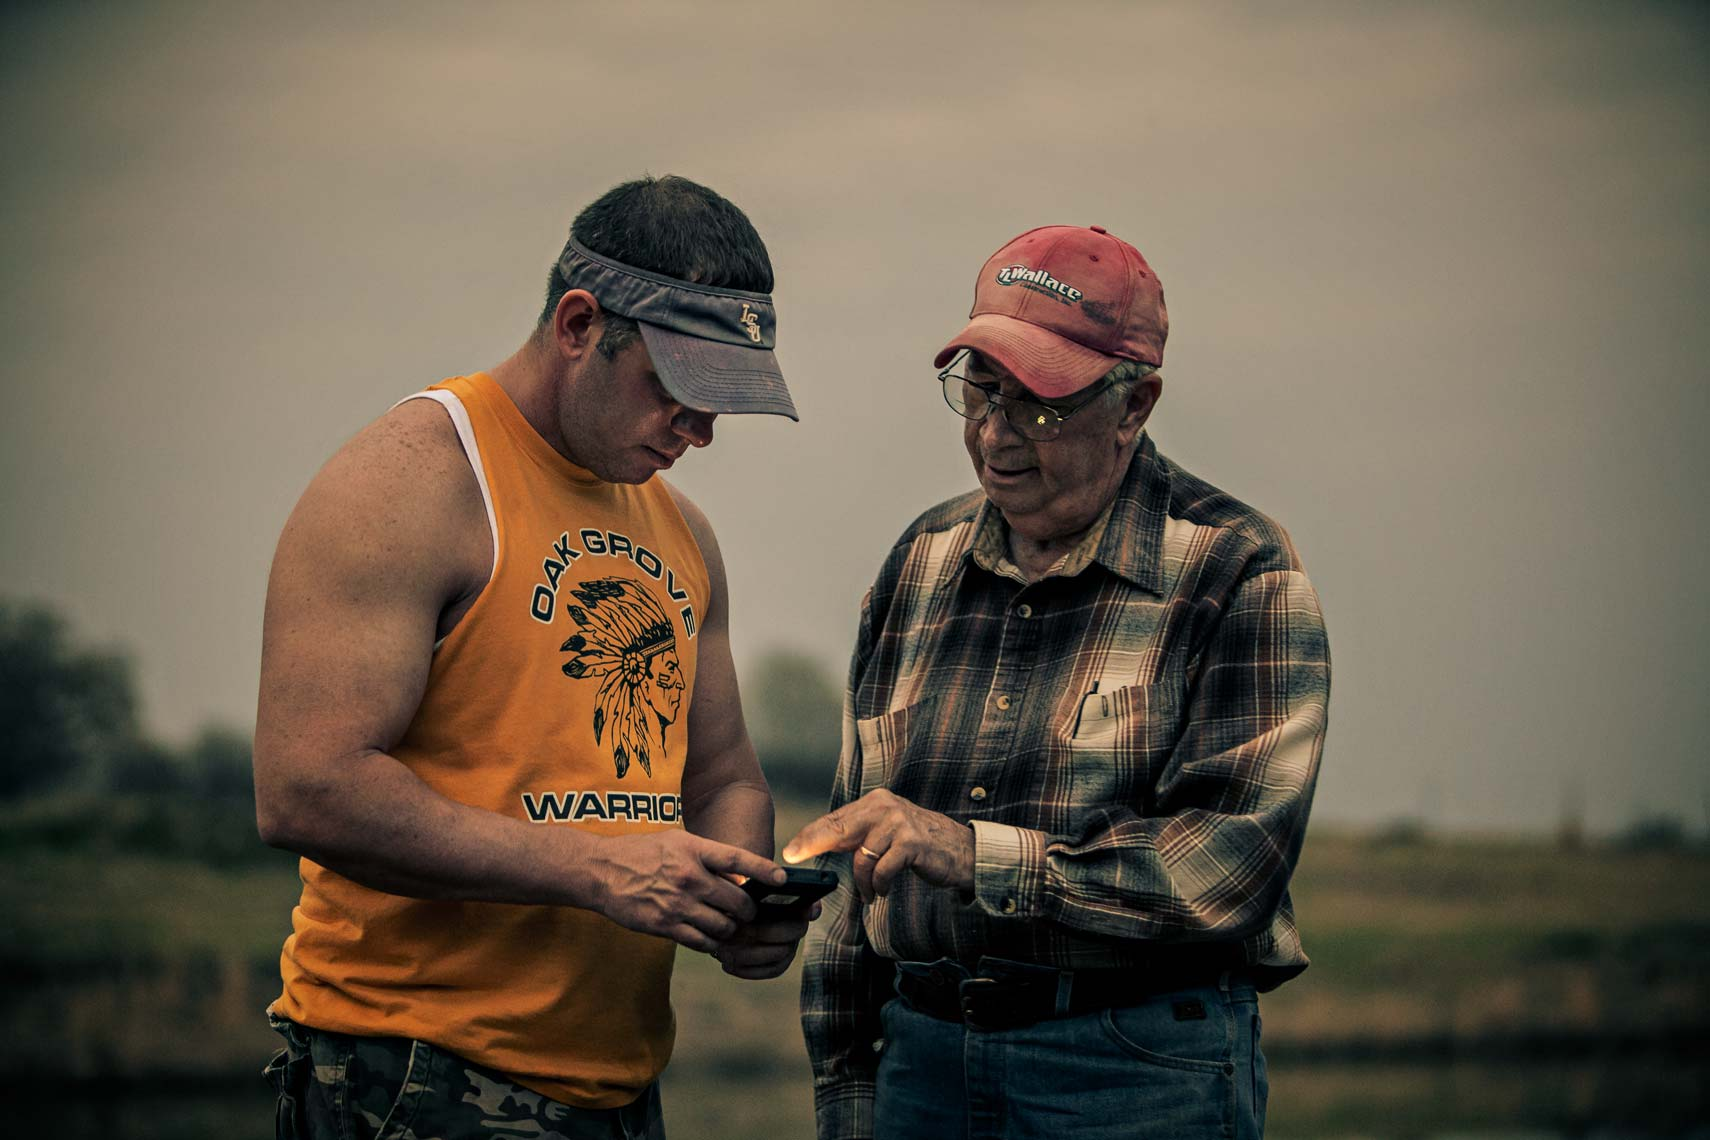 Retired rural man and son check cell phone at dusk. Lifestyle photography